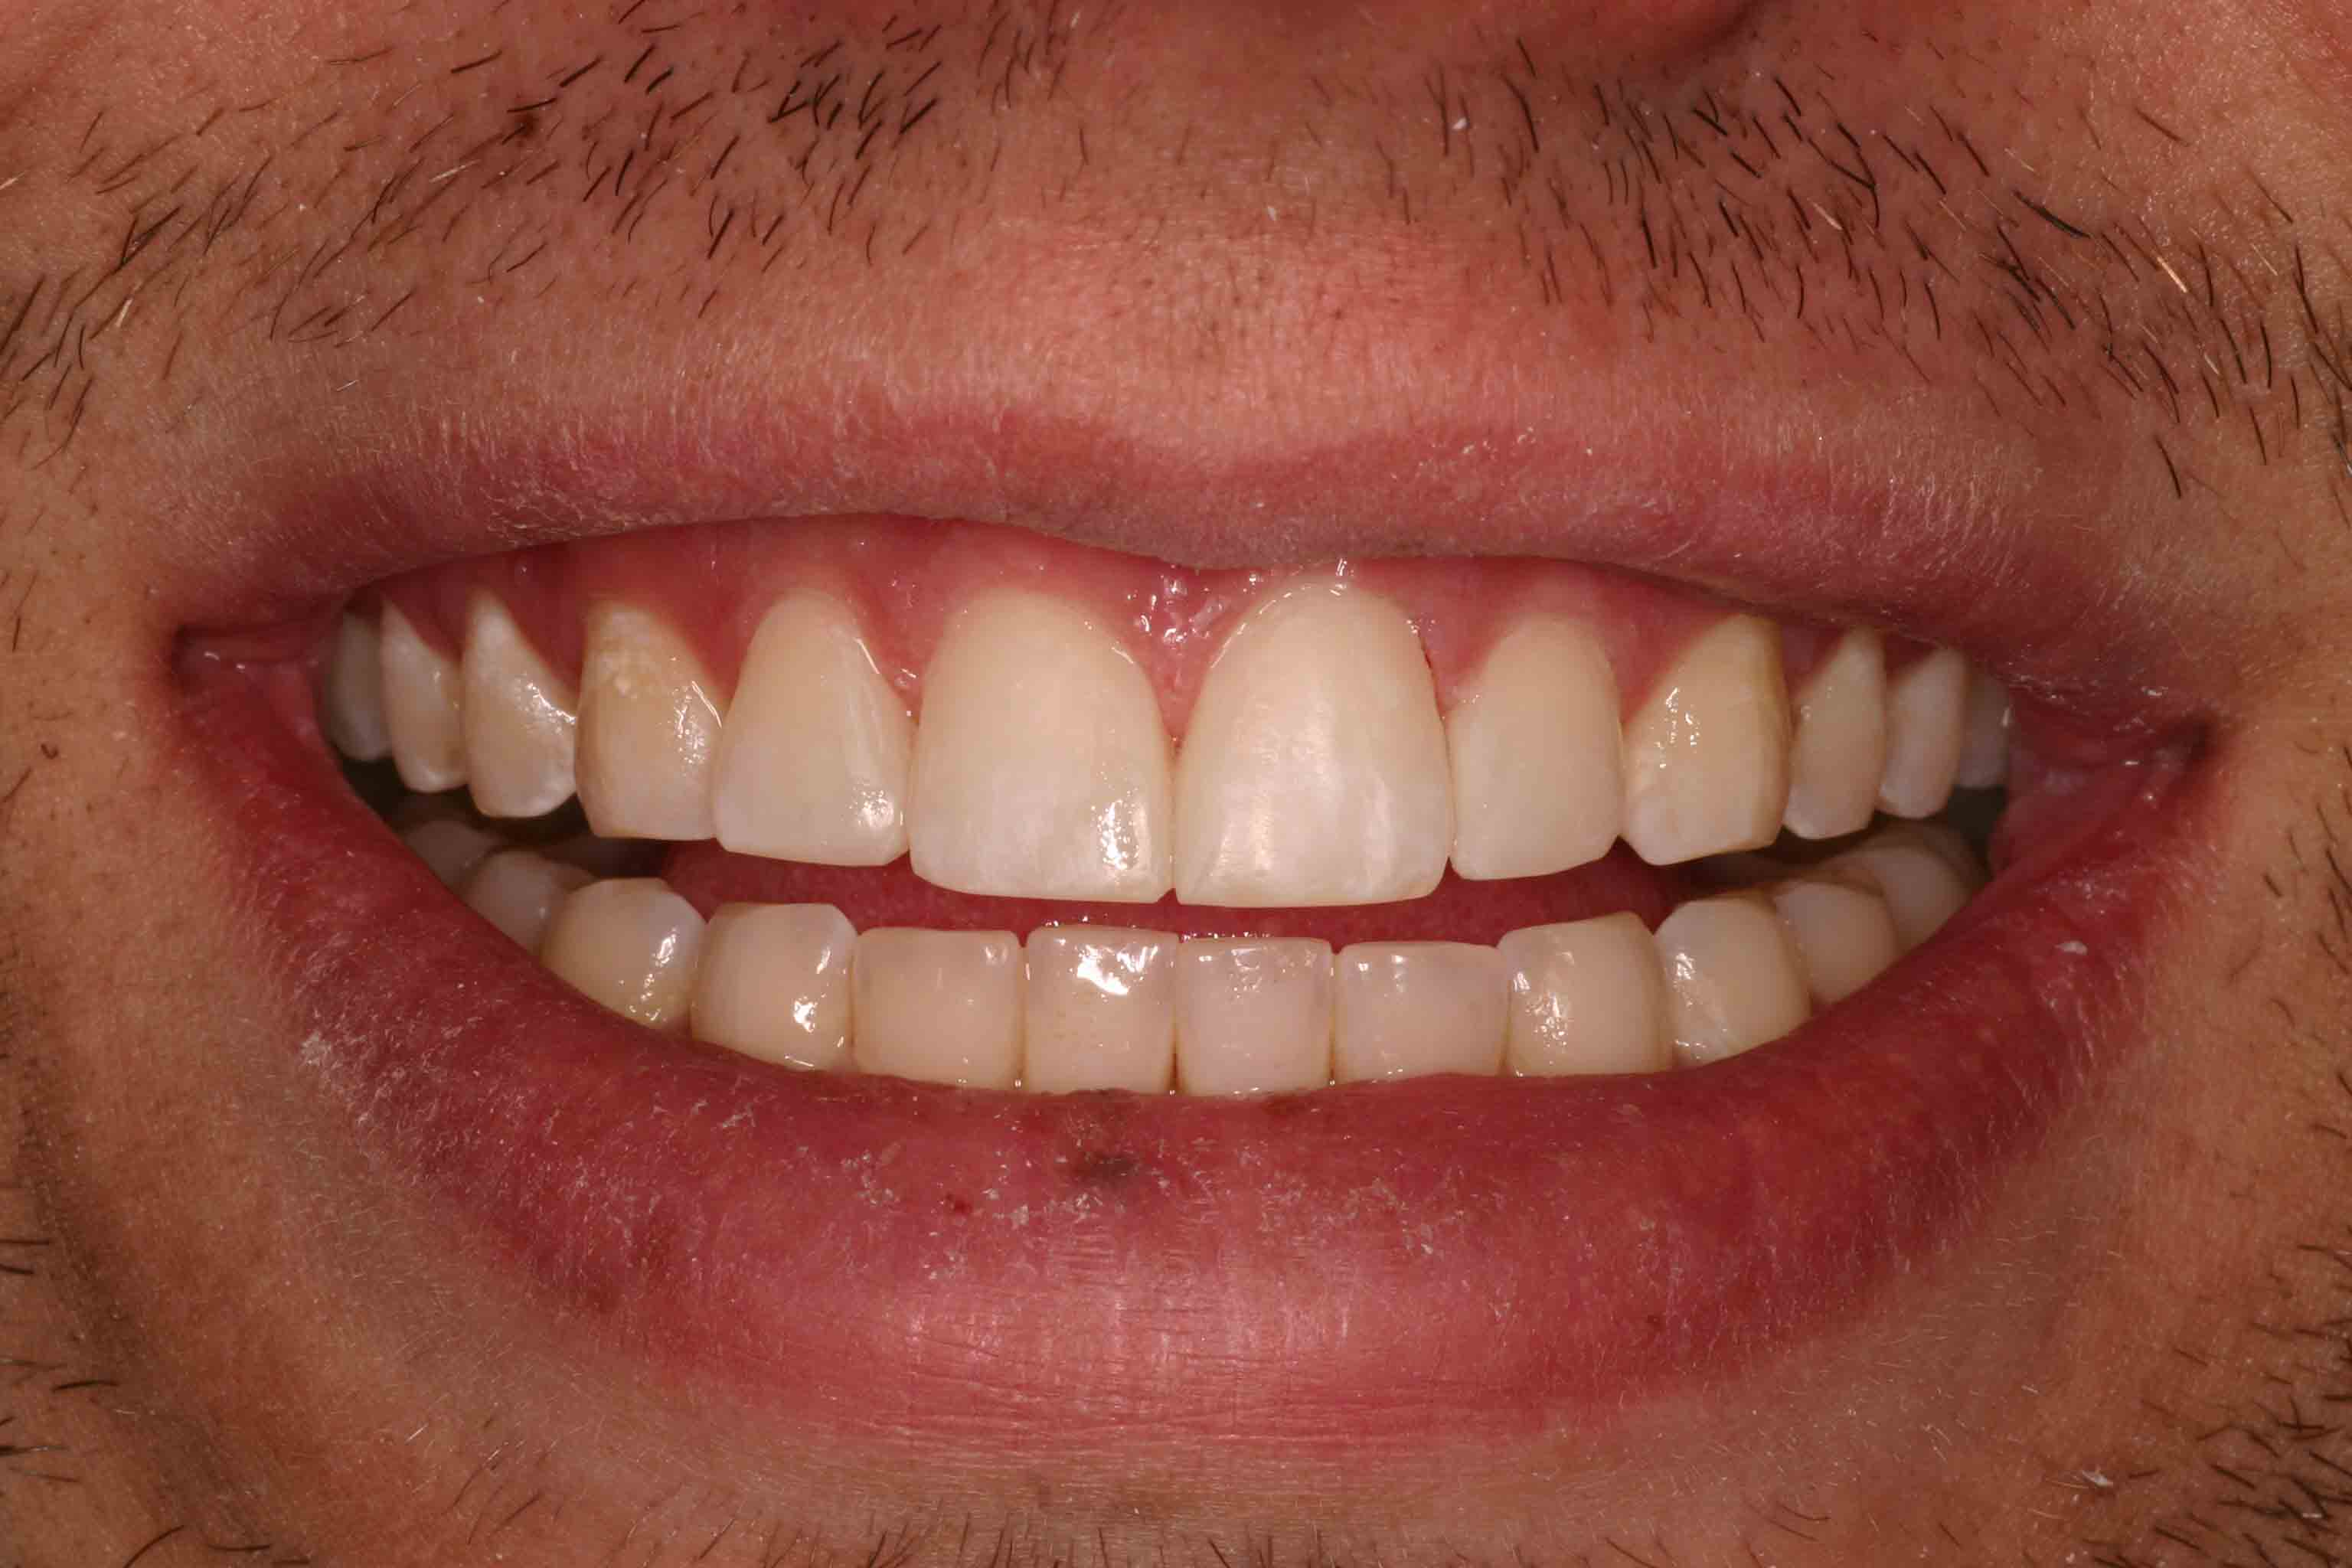 Close up of an actual patient mouth after receiving a smile makeover from Dr. Joe, a dentist in Poway, CA